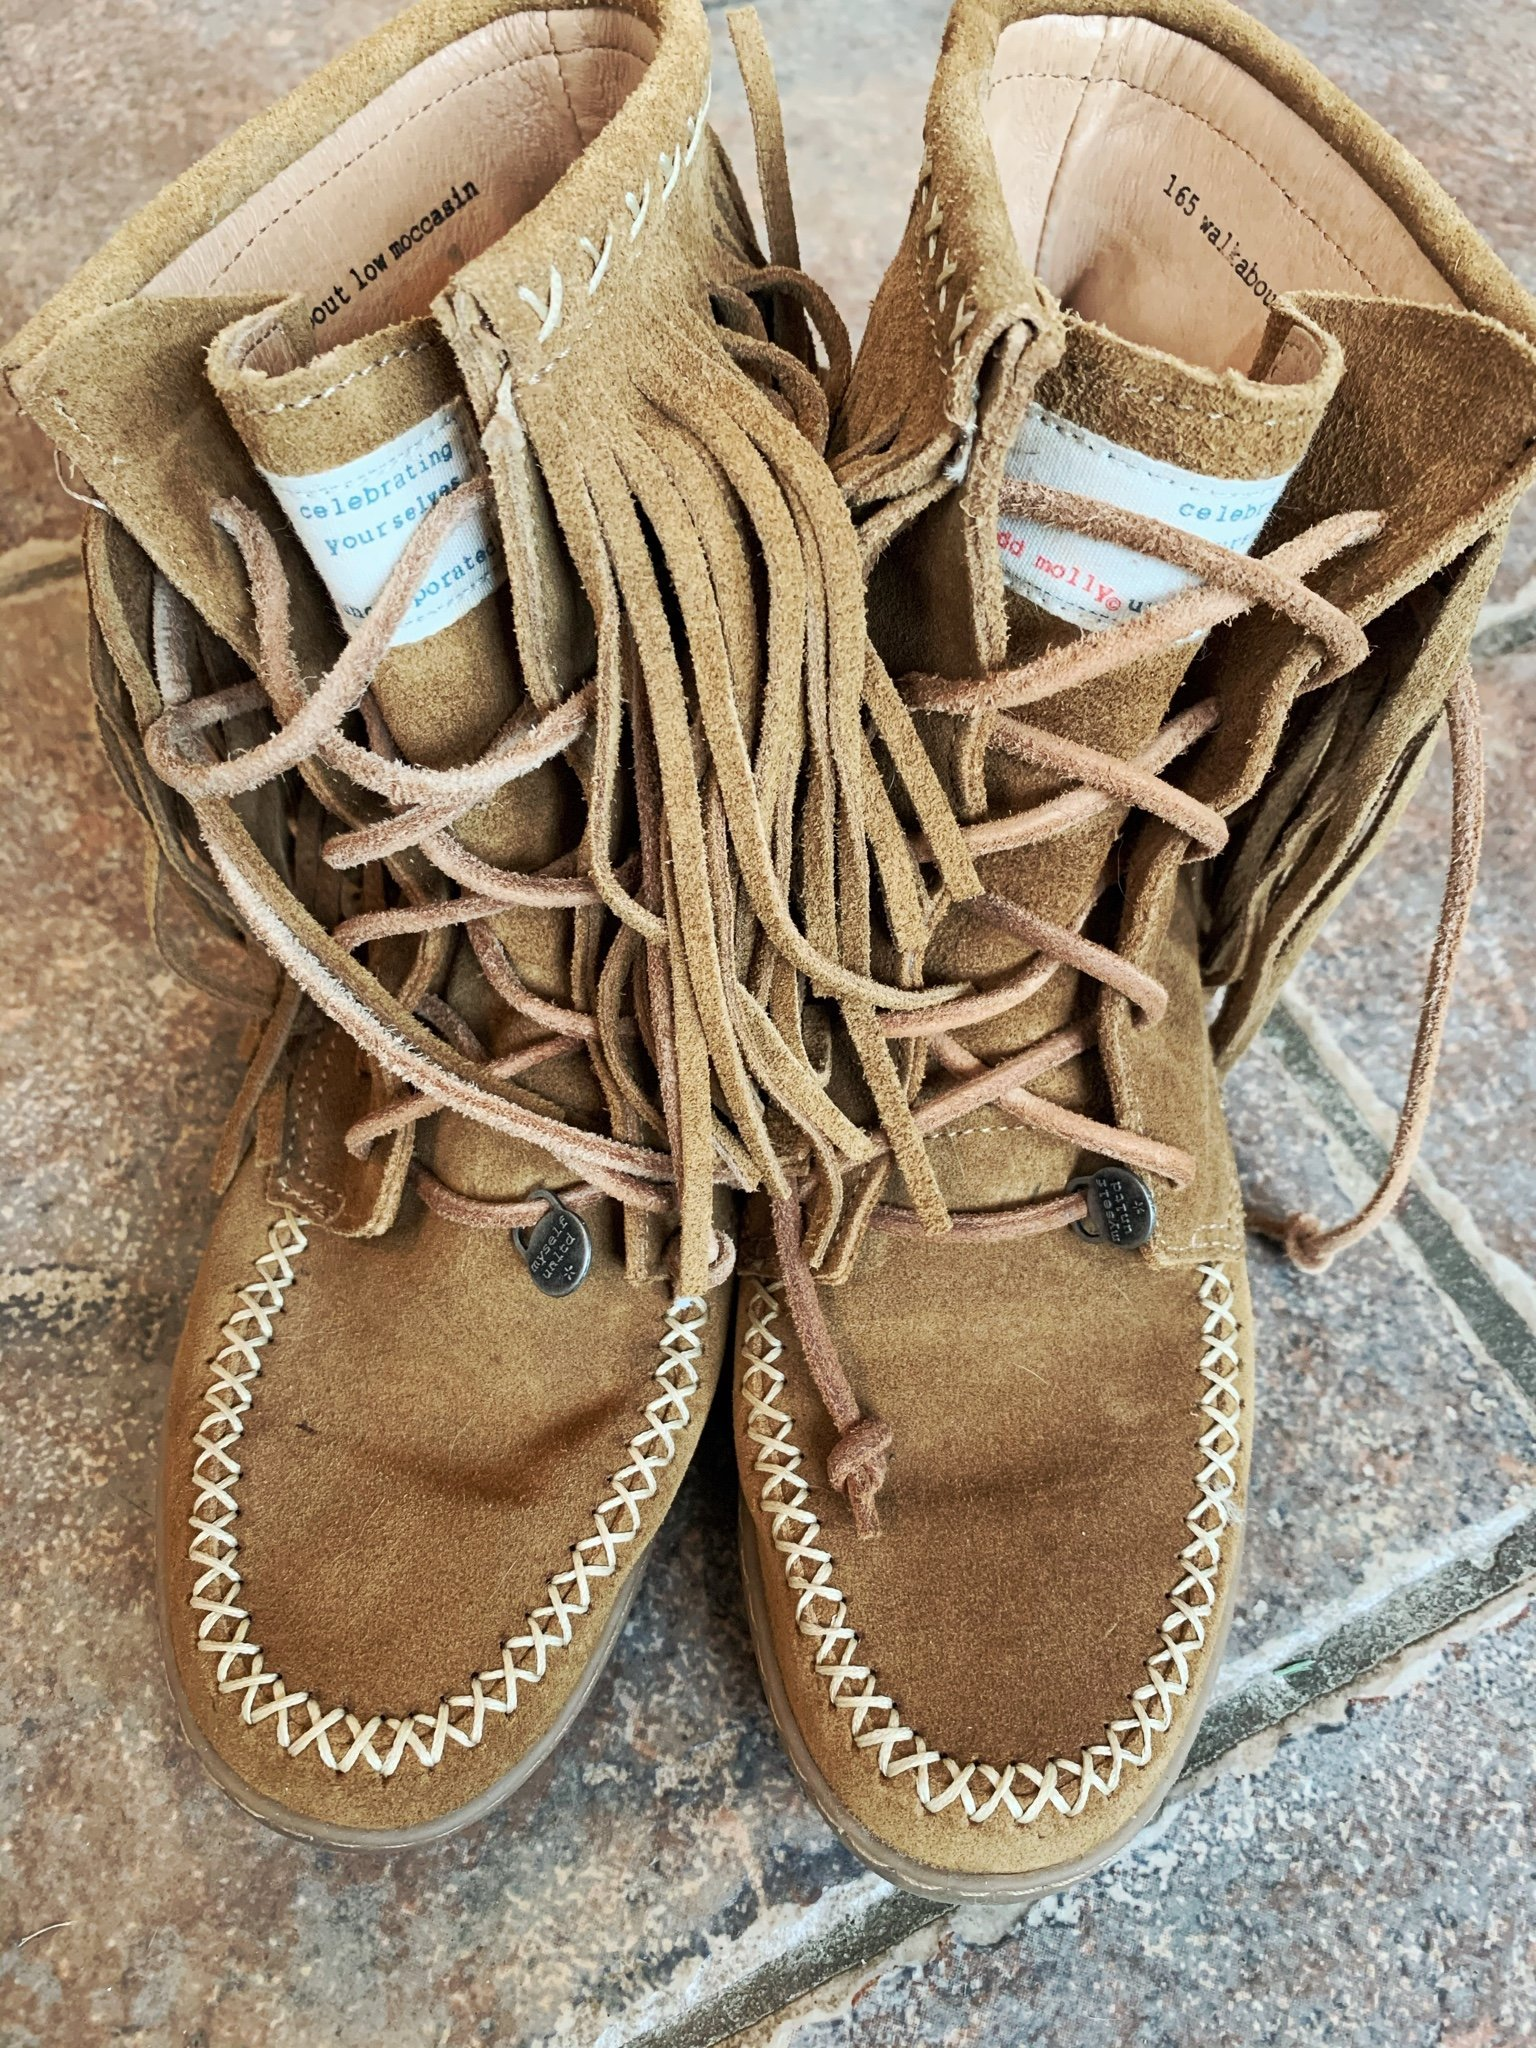 Odd Molly walkabout low moccasin stl 36